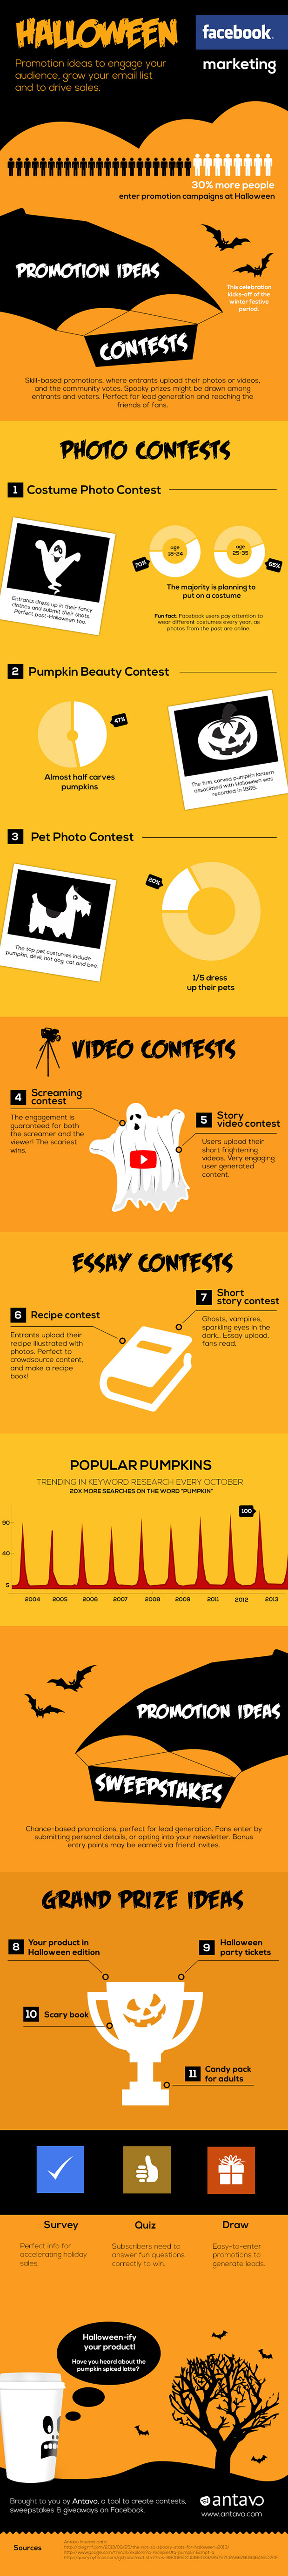 17 best images about halloween marketing tips tricks on 17 best images about halloween marketing tips tricks facebook marketing and followers